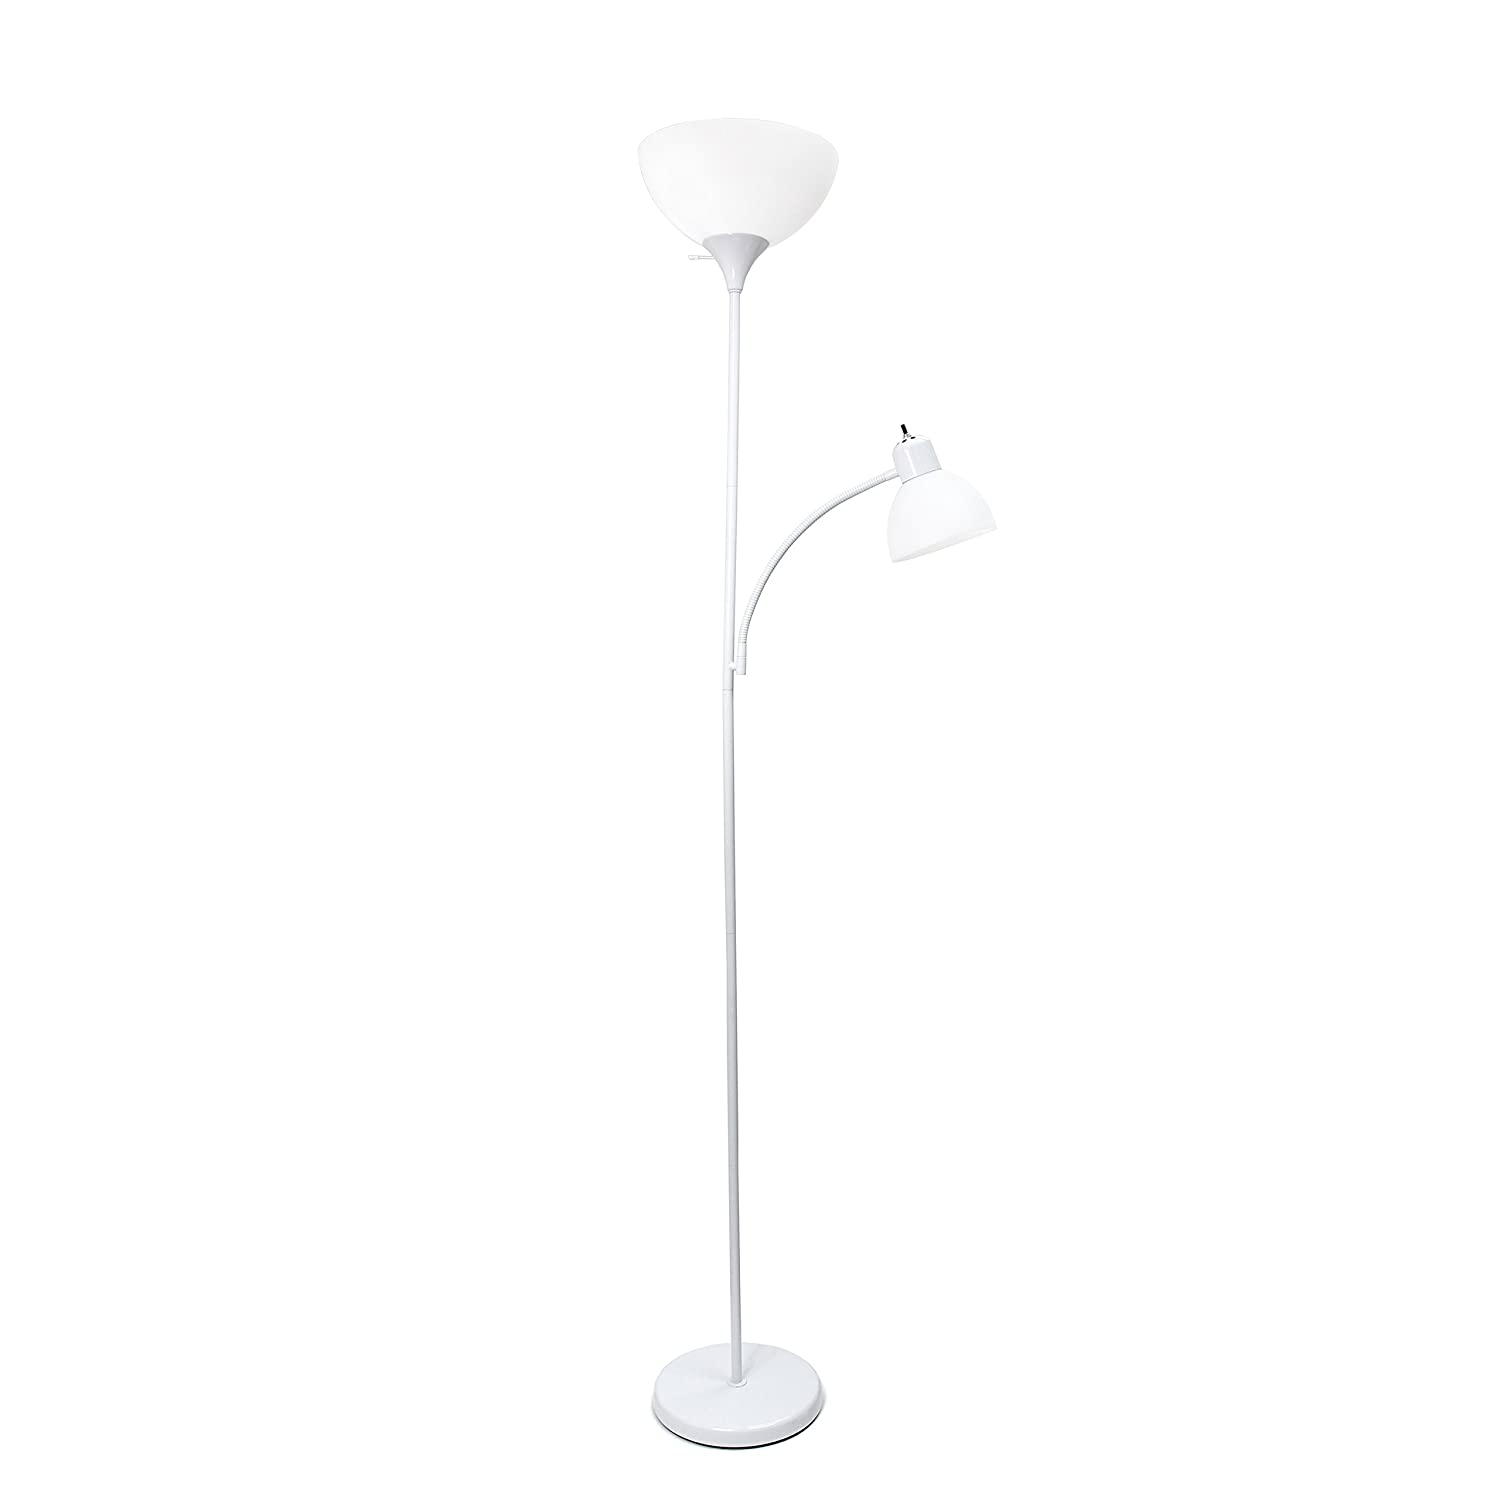 Simple Designs Home LF2000-WHT Mother-Daughter Floor Lamp with Reading Light 71 x 20.47 x 11.35 inches White